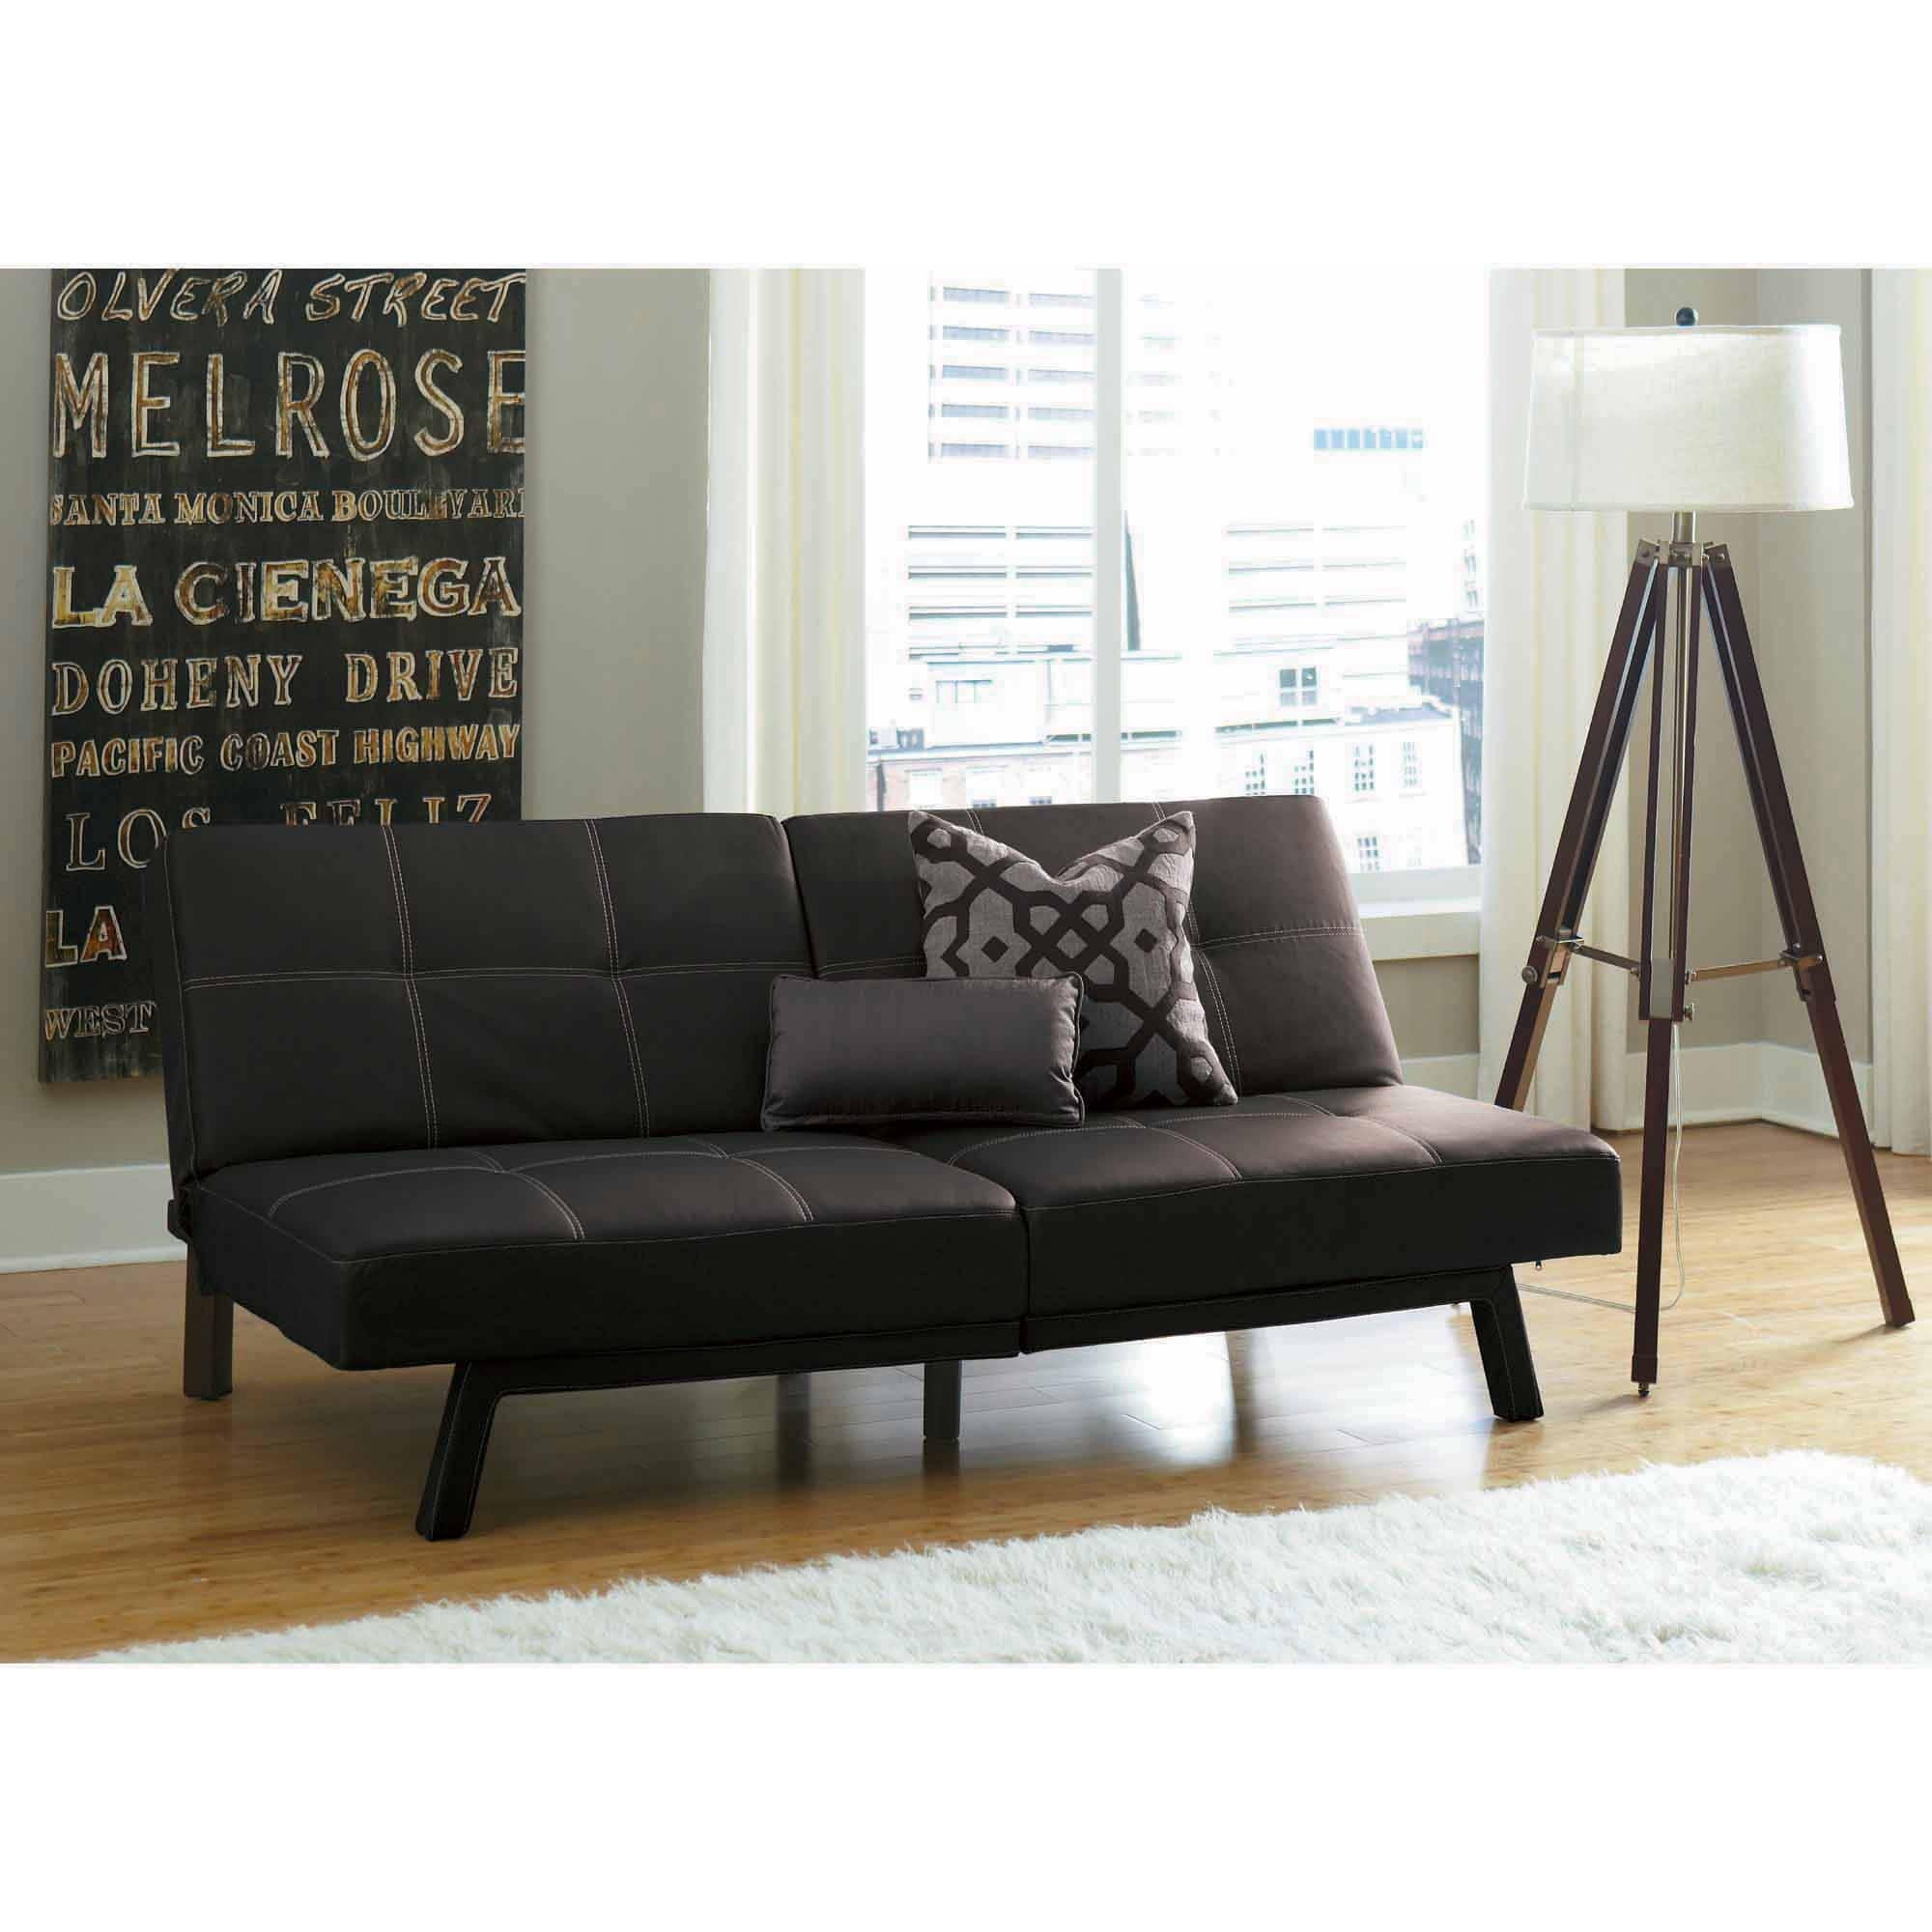 Delaney Split Back Futon Sofa Bed, Multiple Colors – Walmart Intended For Leather Fouton Sofas (Image 6 of 20)